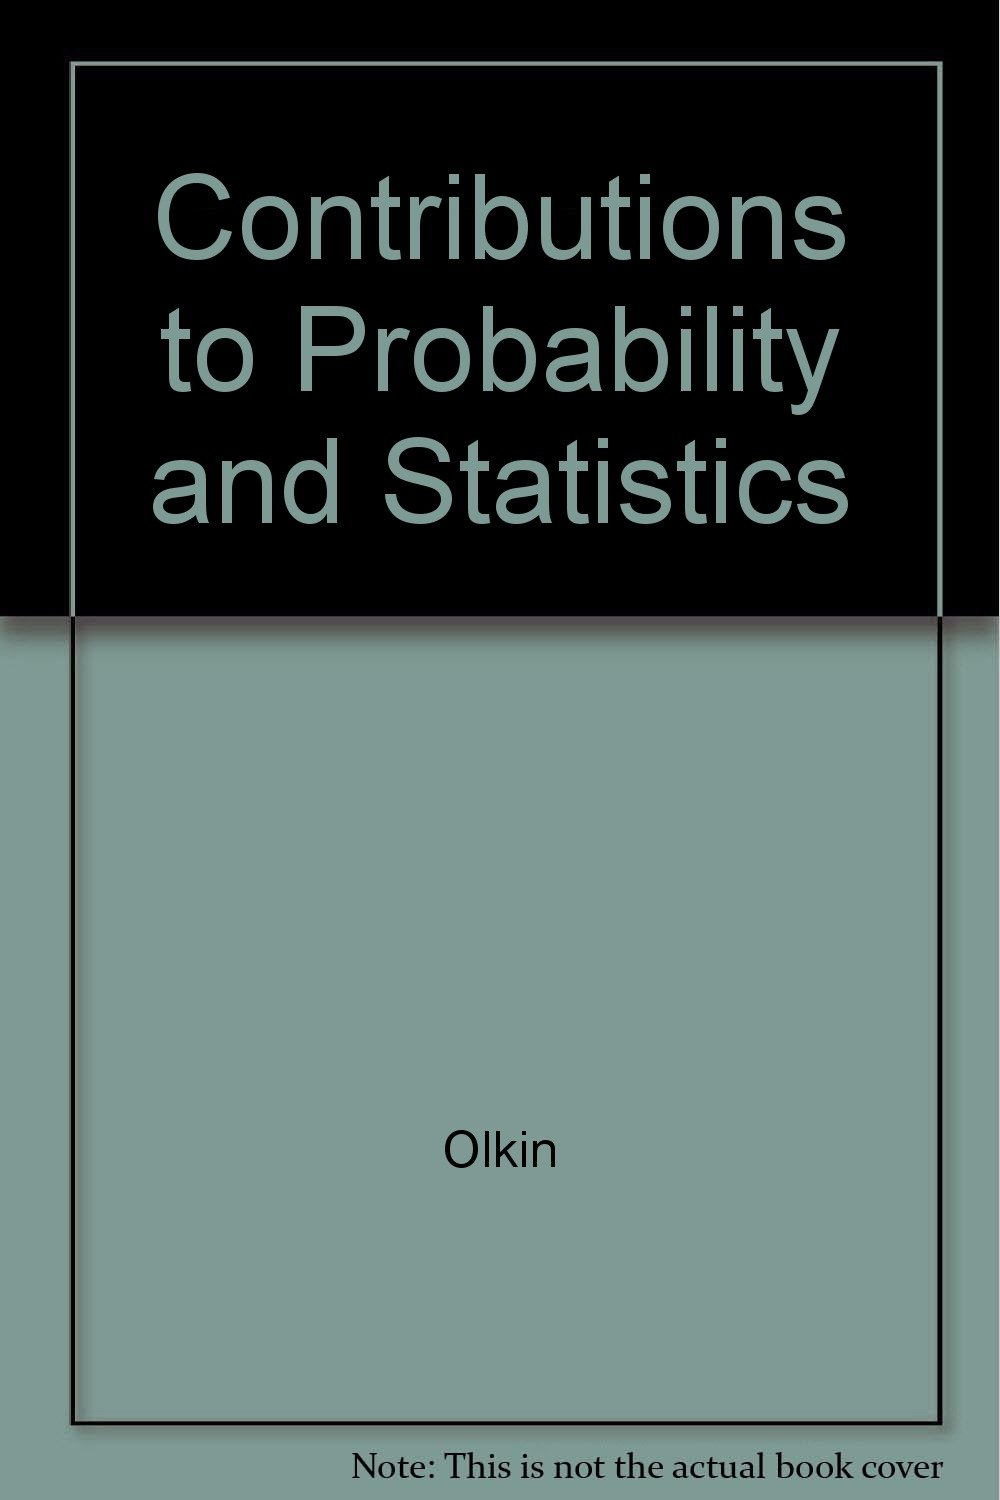 contributions to probability and statistics essays in honor of contributions to probability and statistics essays in honor of harold hotelling ingram olkin 9780804705967 com books